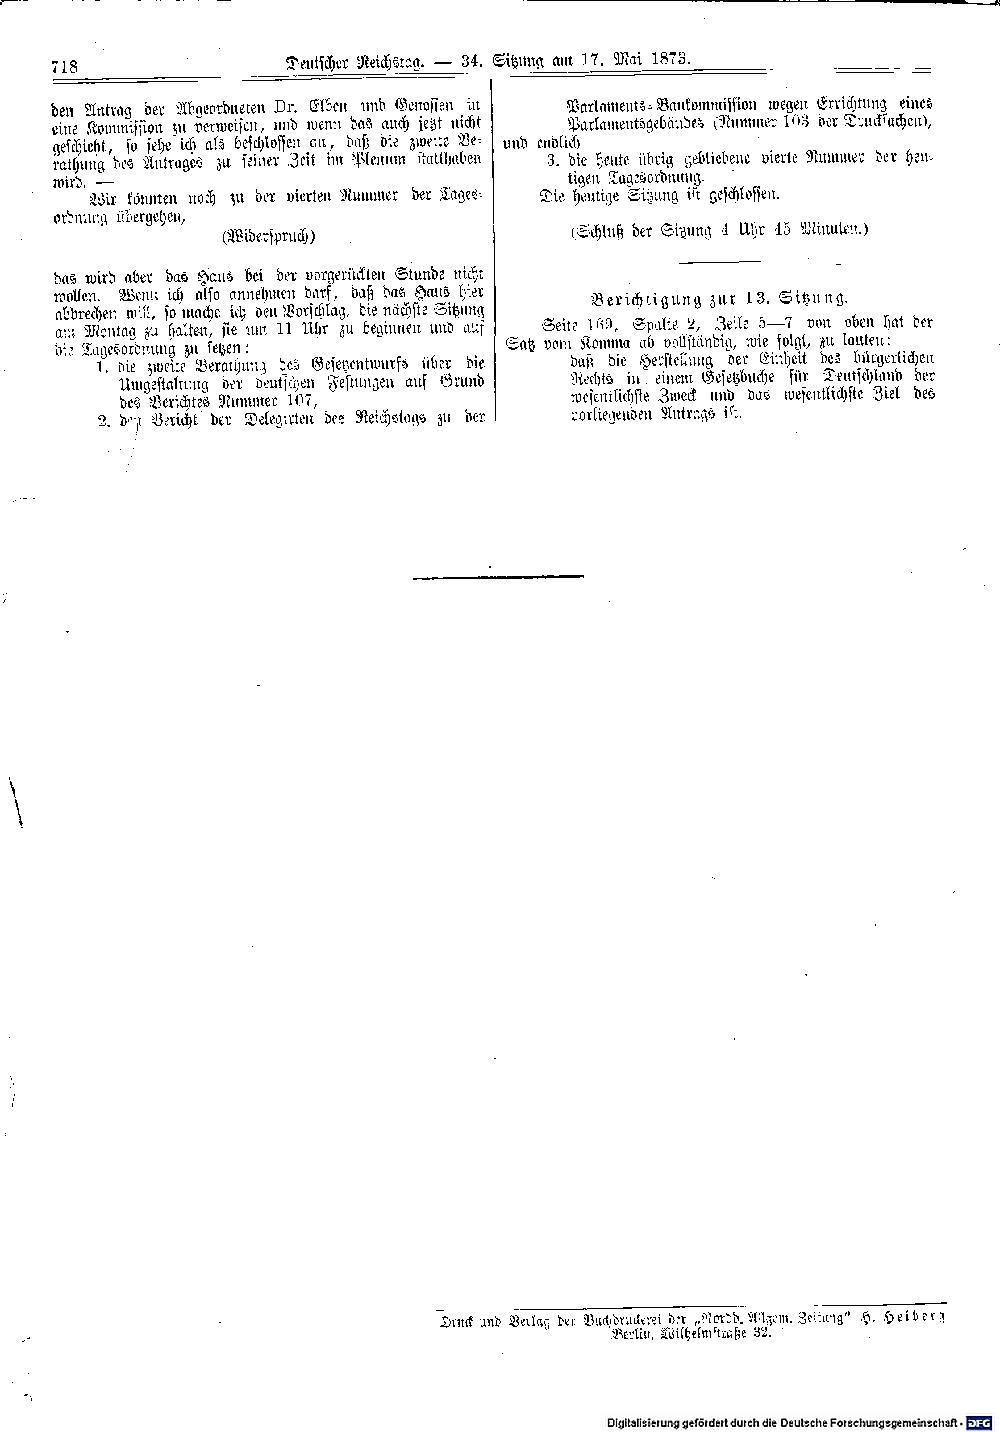 Scan of page 718